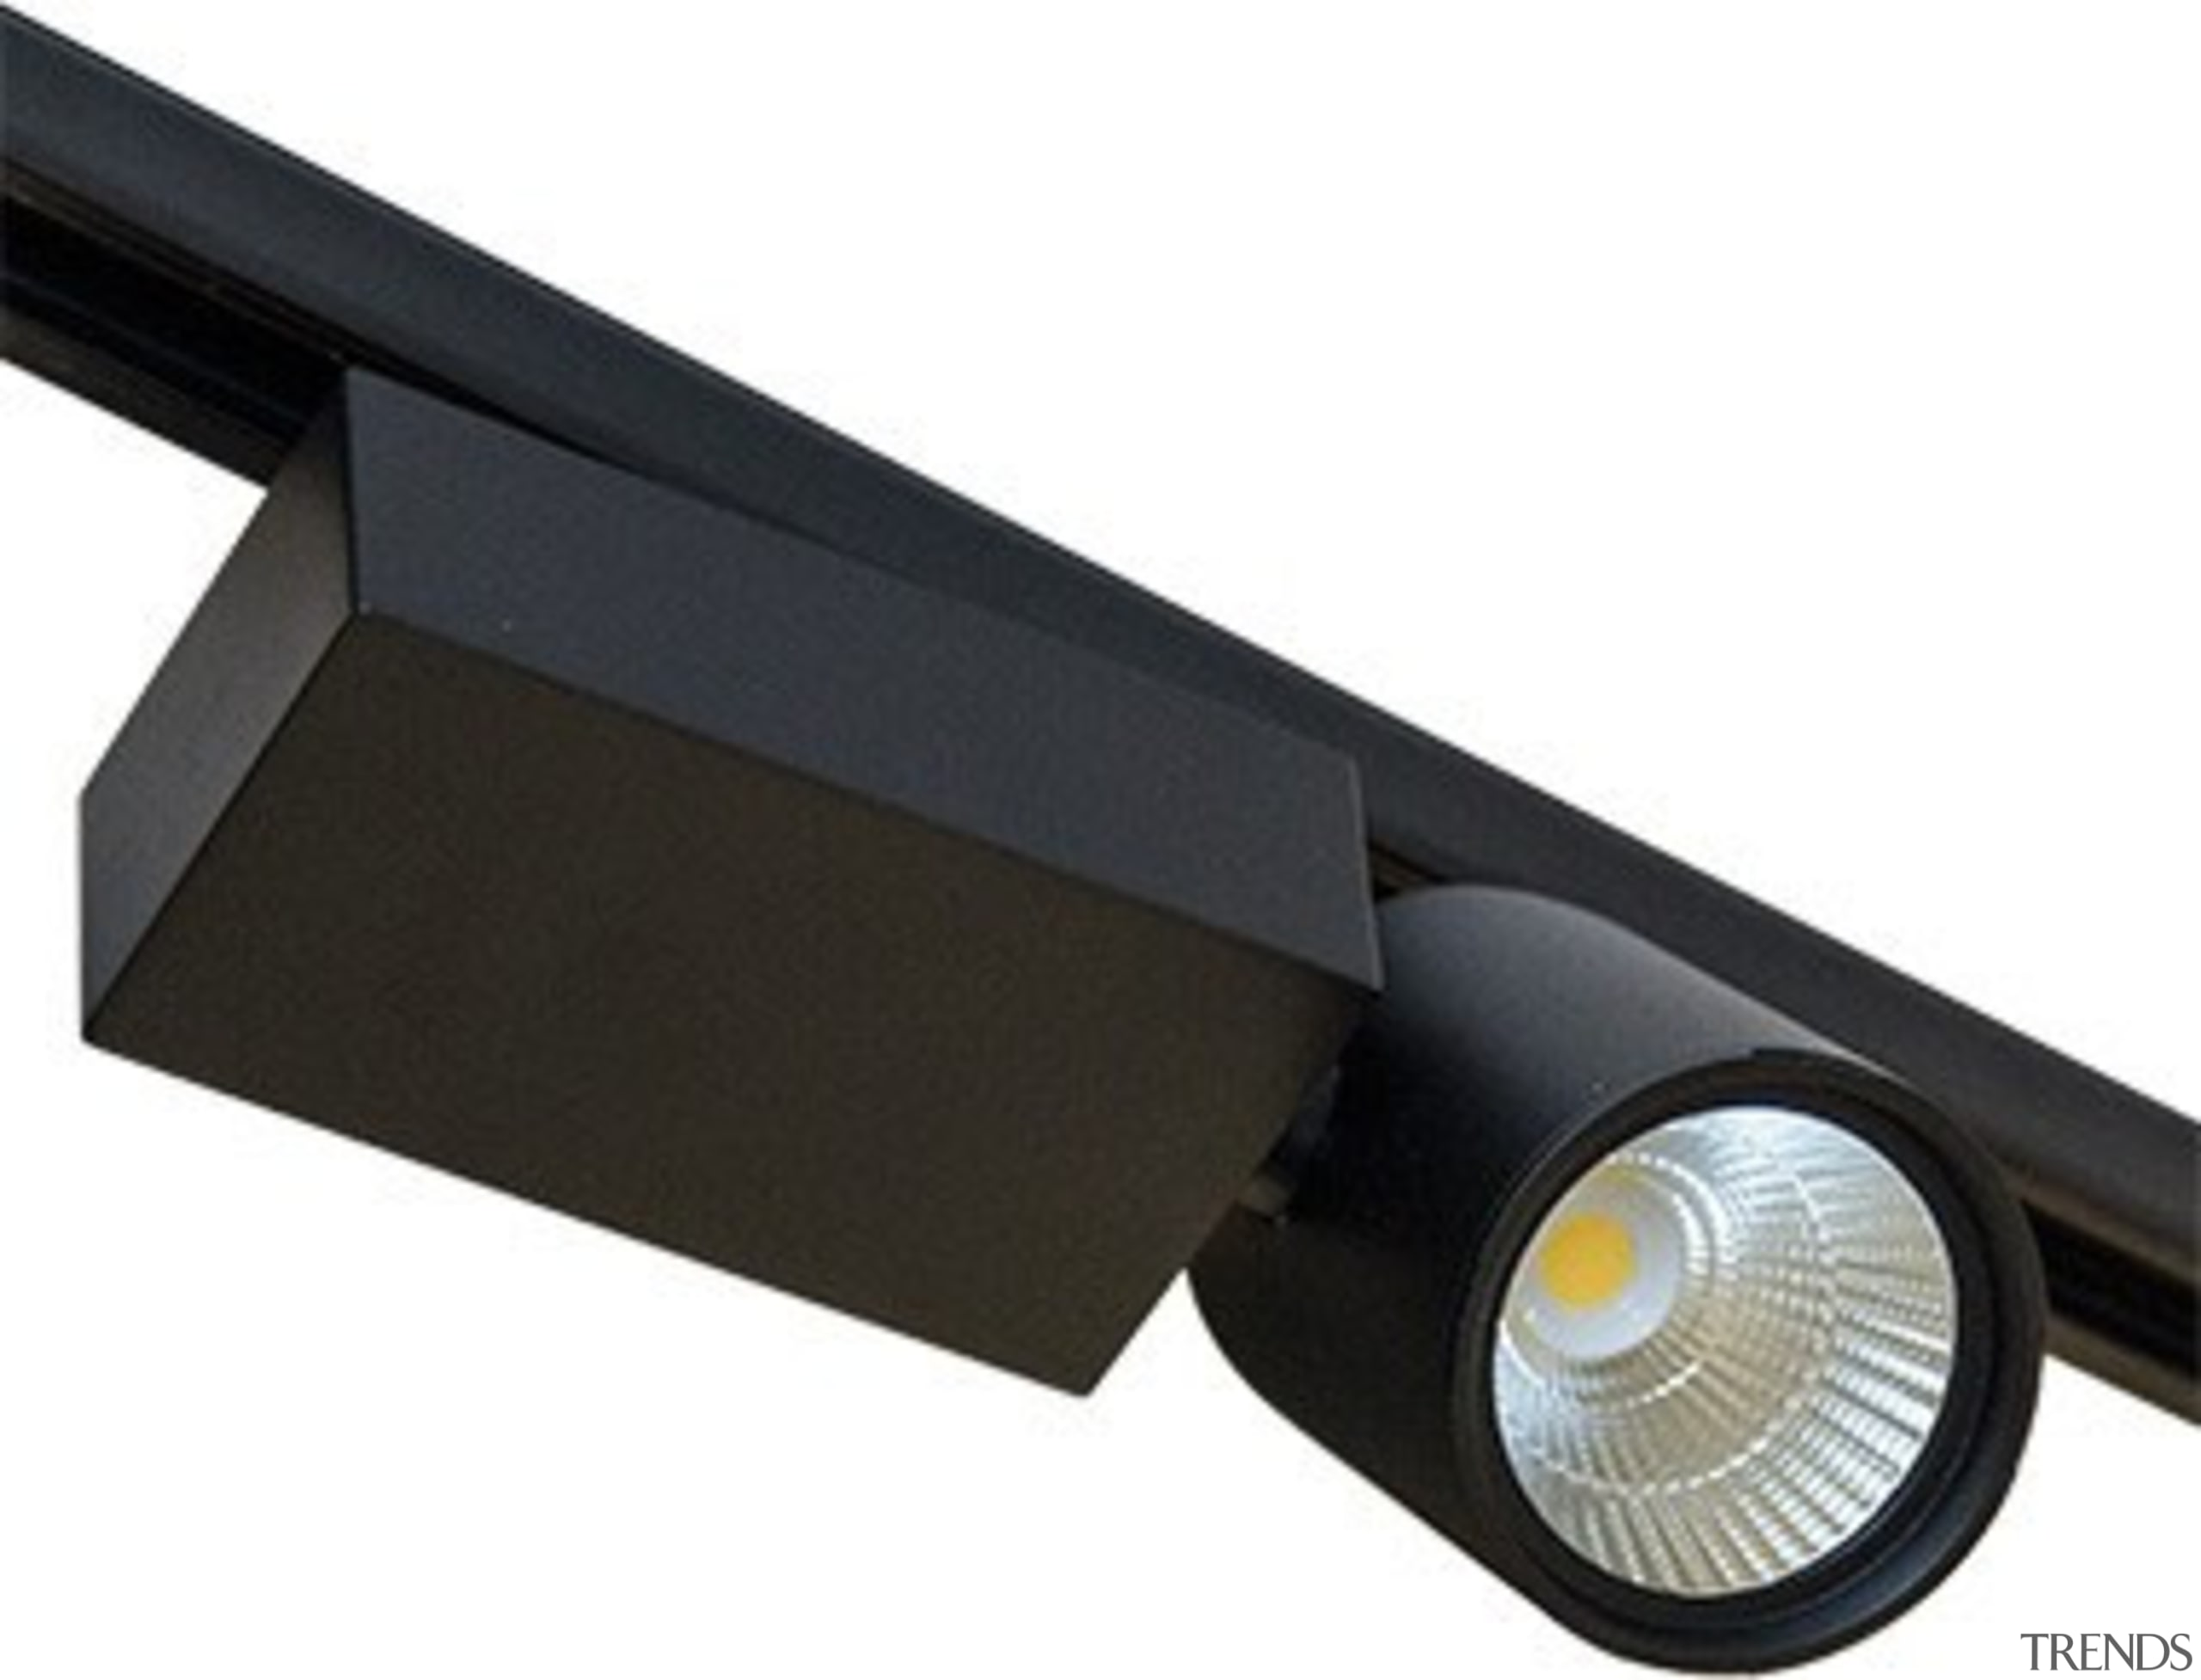 FeaturesA robust track mounted aluminium design with a hardware, light, lighting, product design, white, black